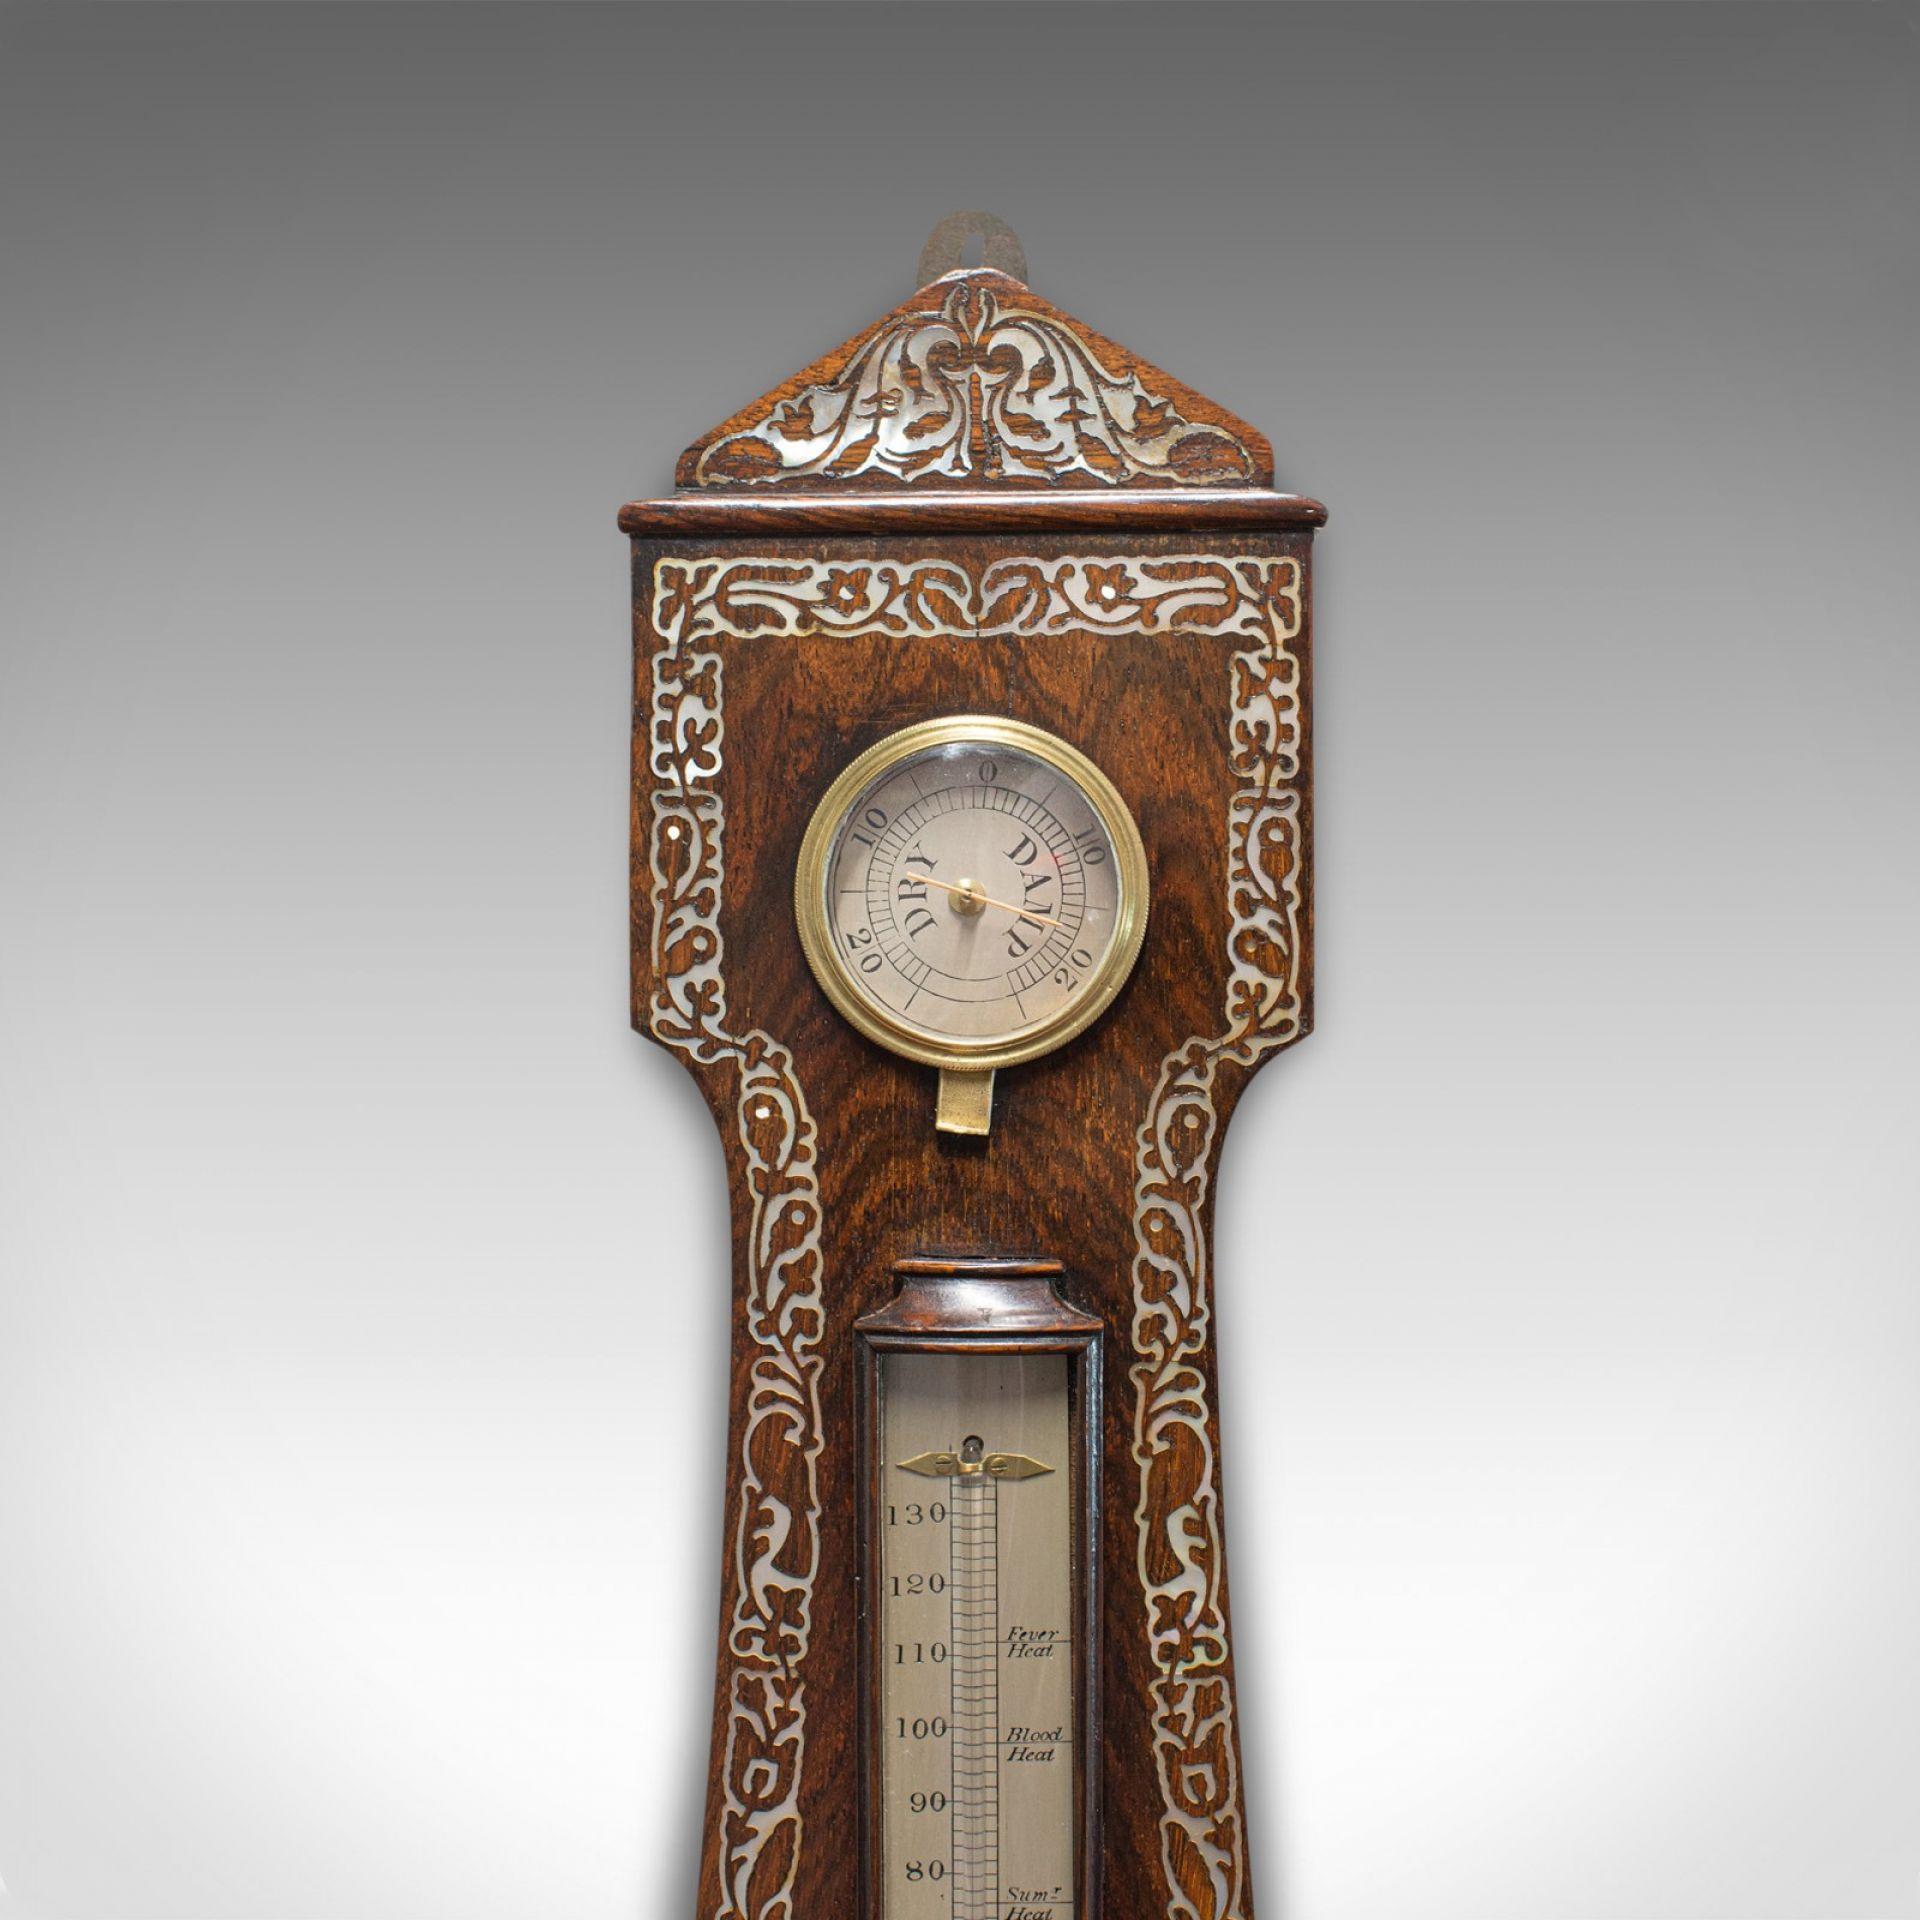 Antique Banjo Barometer, English, Rosewood, Mother of Pearl, Victorian, C.1900